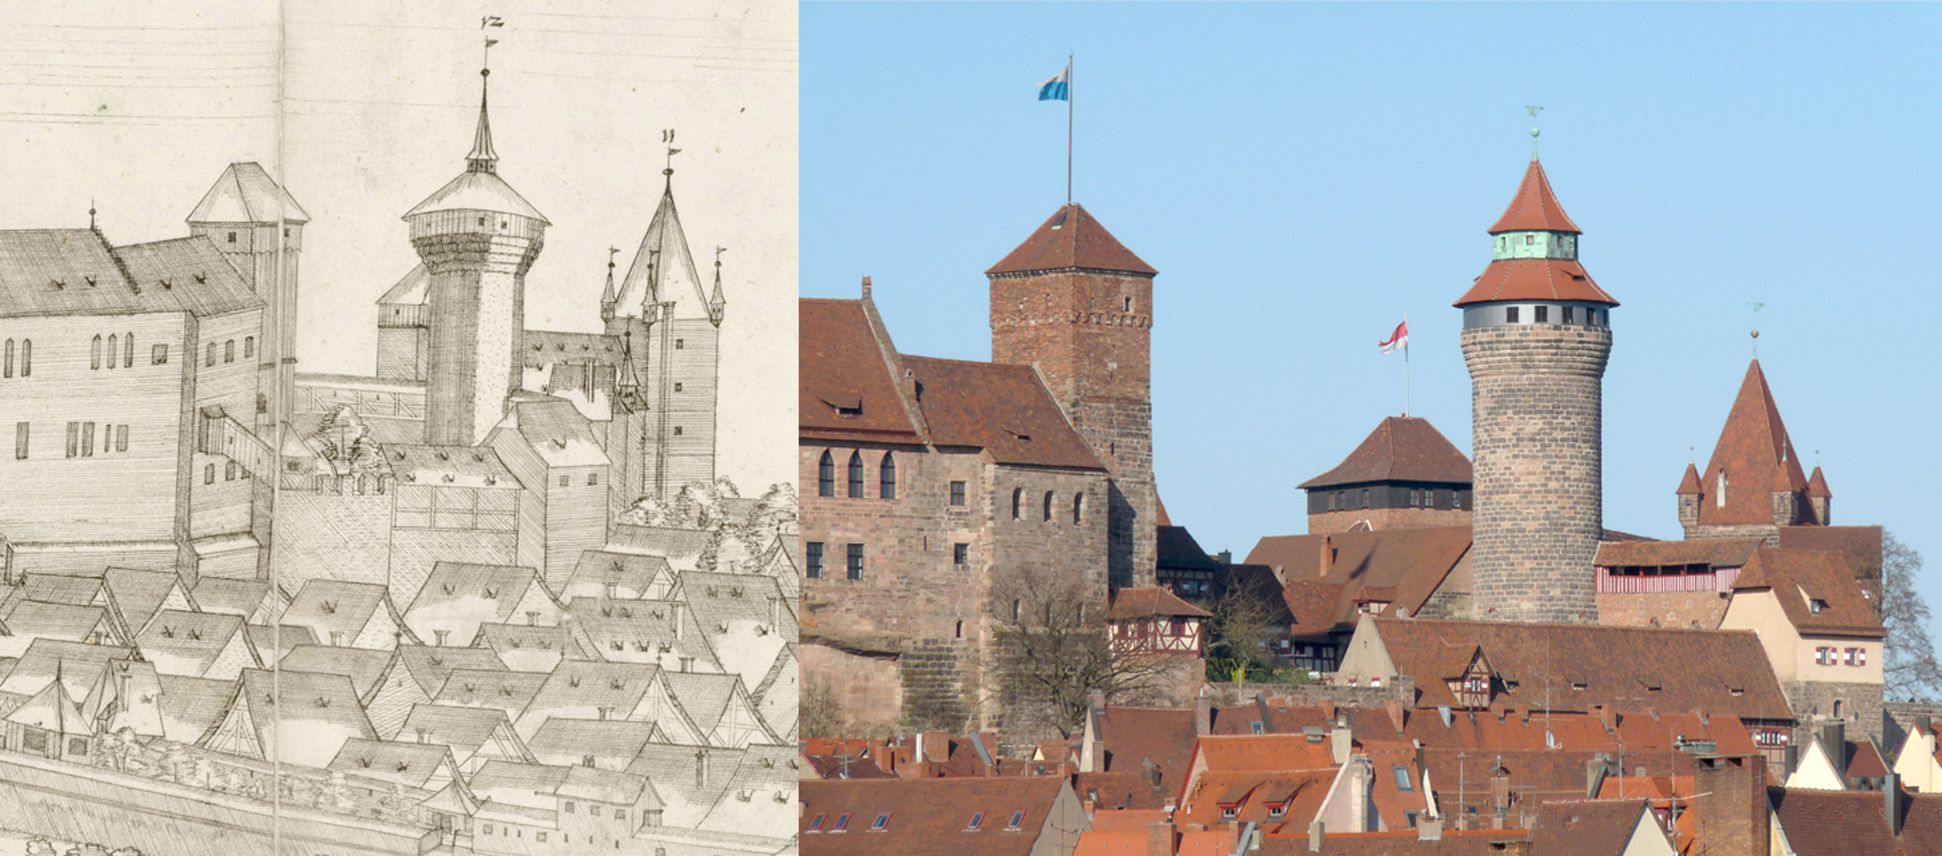 Panoramic view of the City of Nuremberg as seen from the west Contrasting detail of the Castle with the state of today